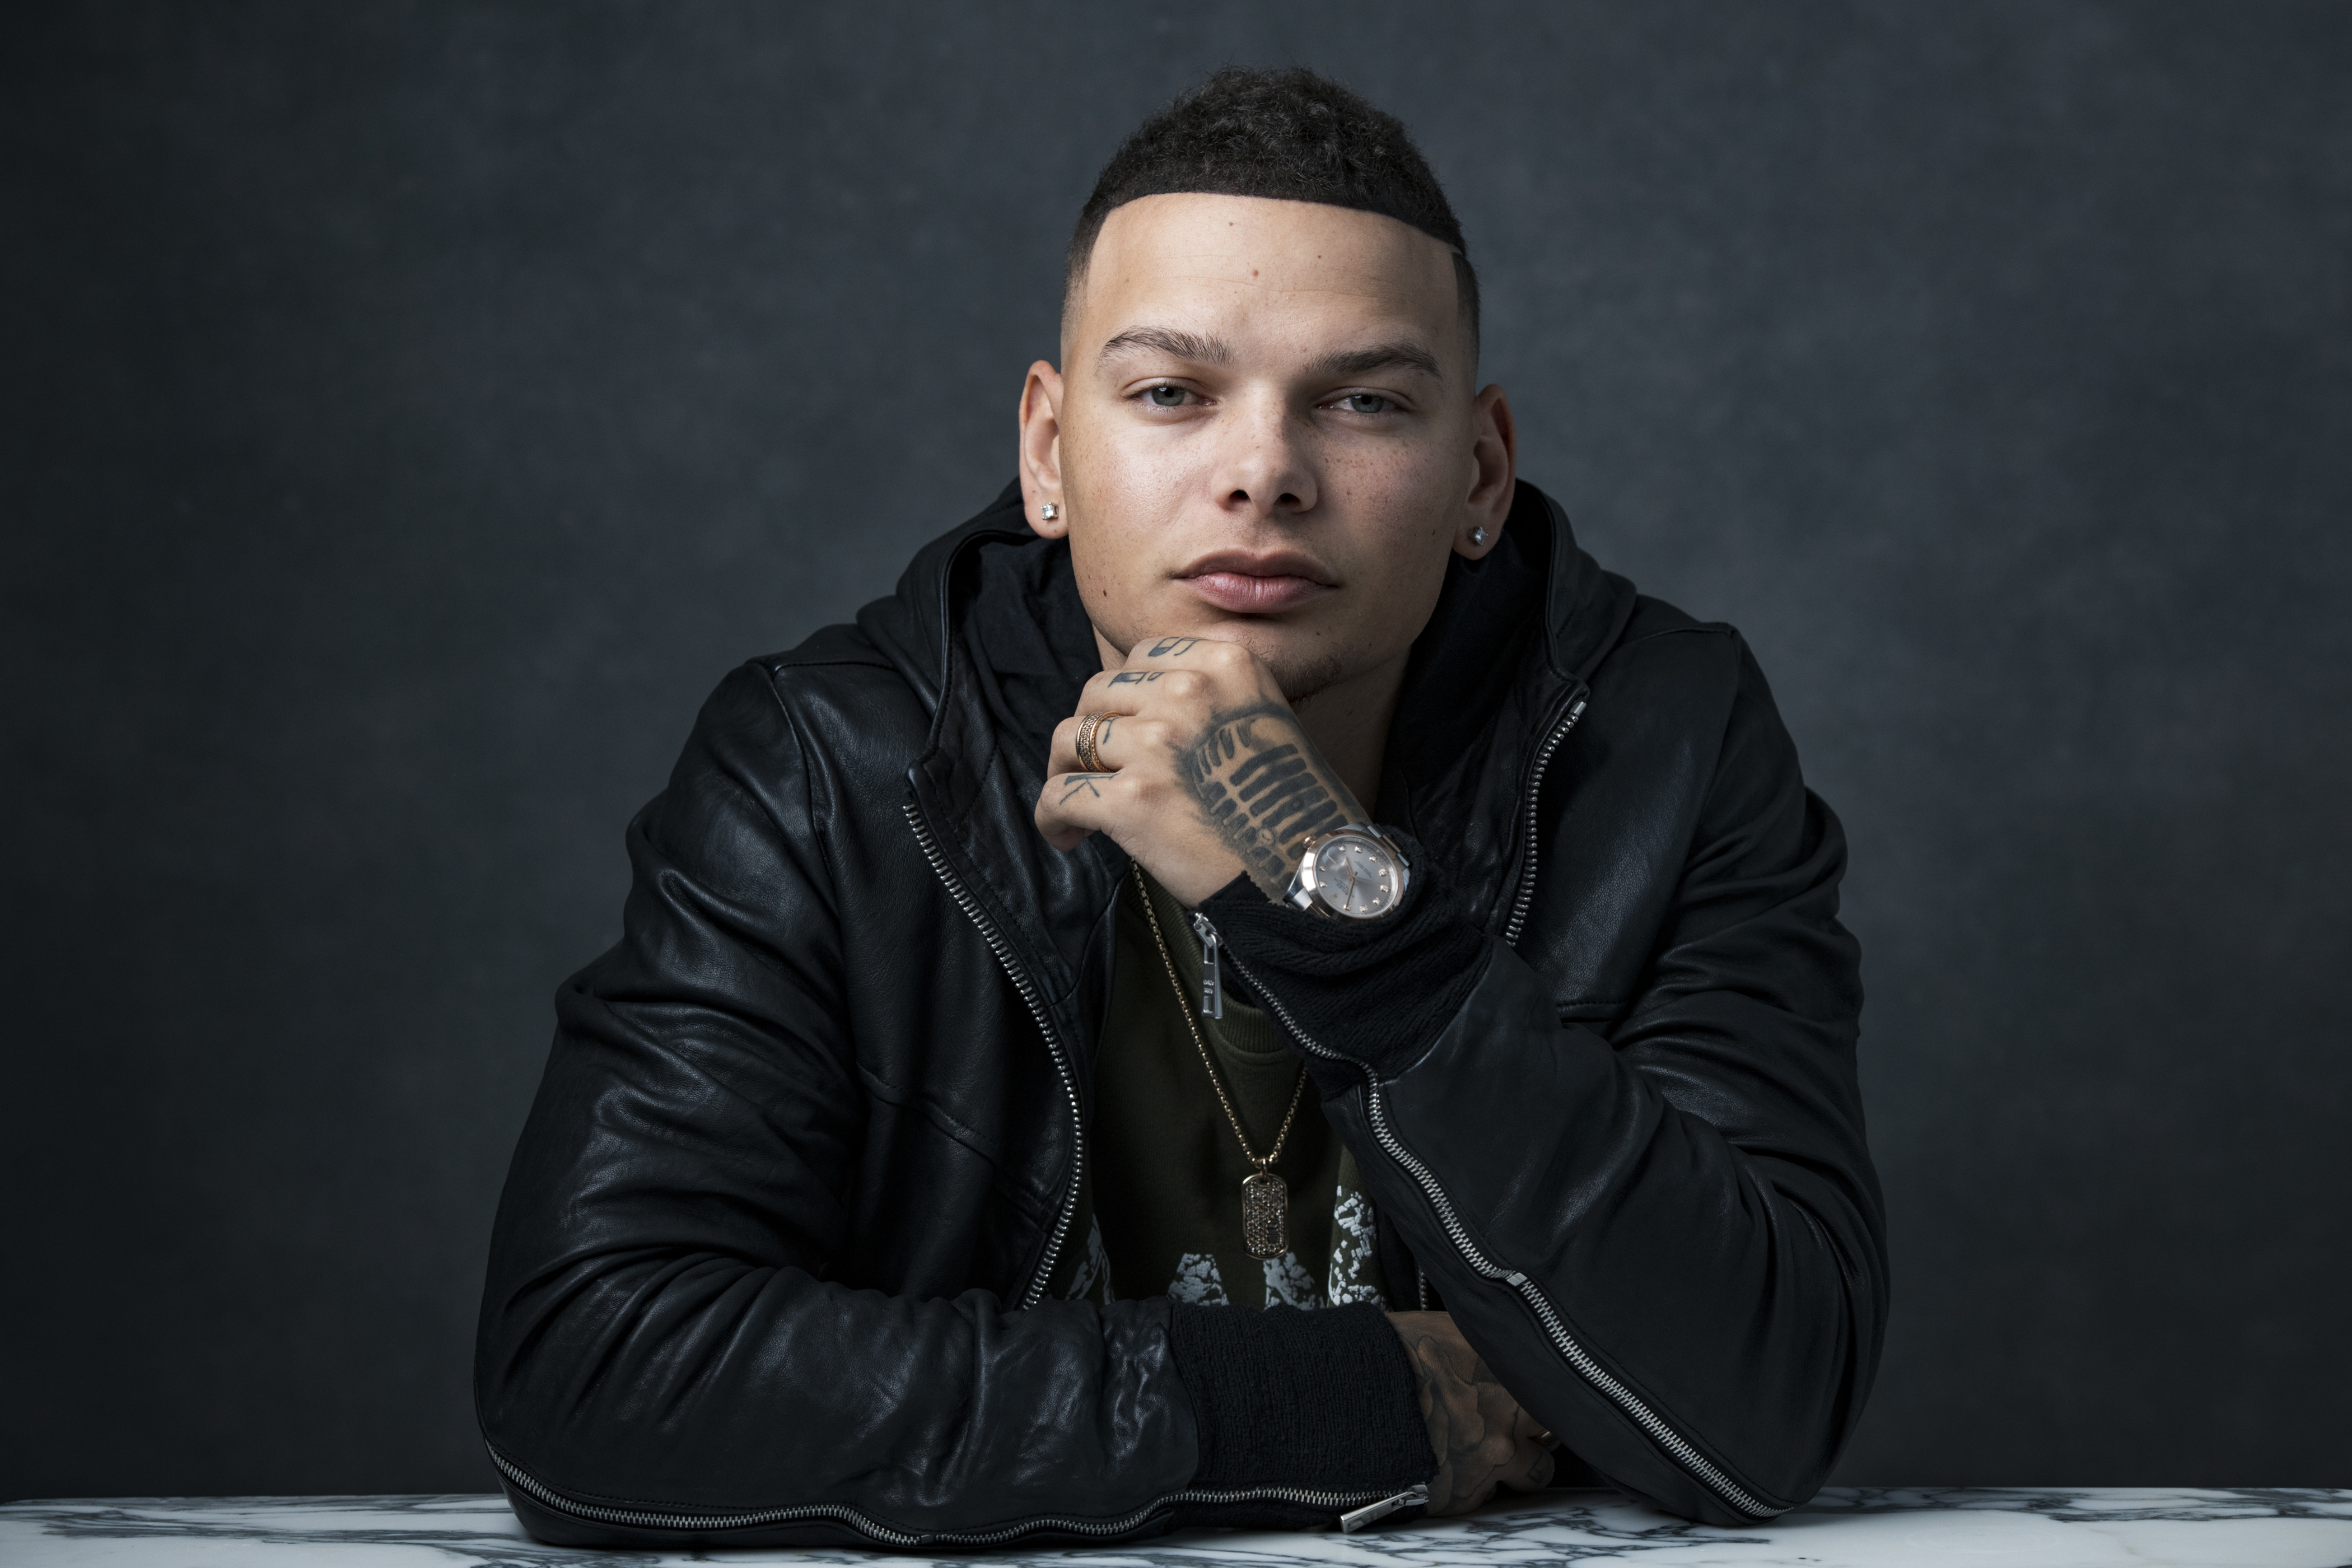 In this Nov. 7, 2018 file photo, country singer Kane Brown poses for a portrait in New York.